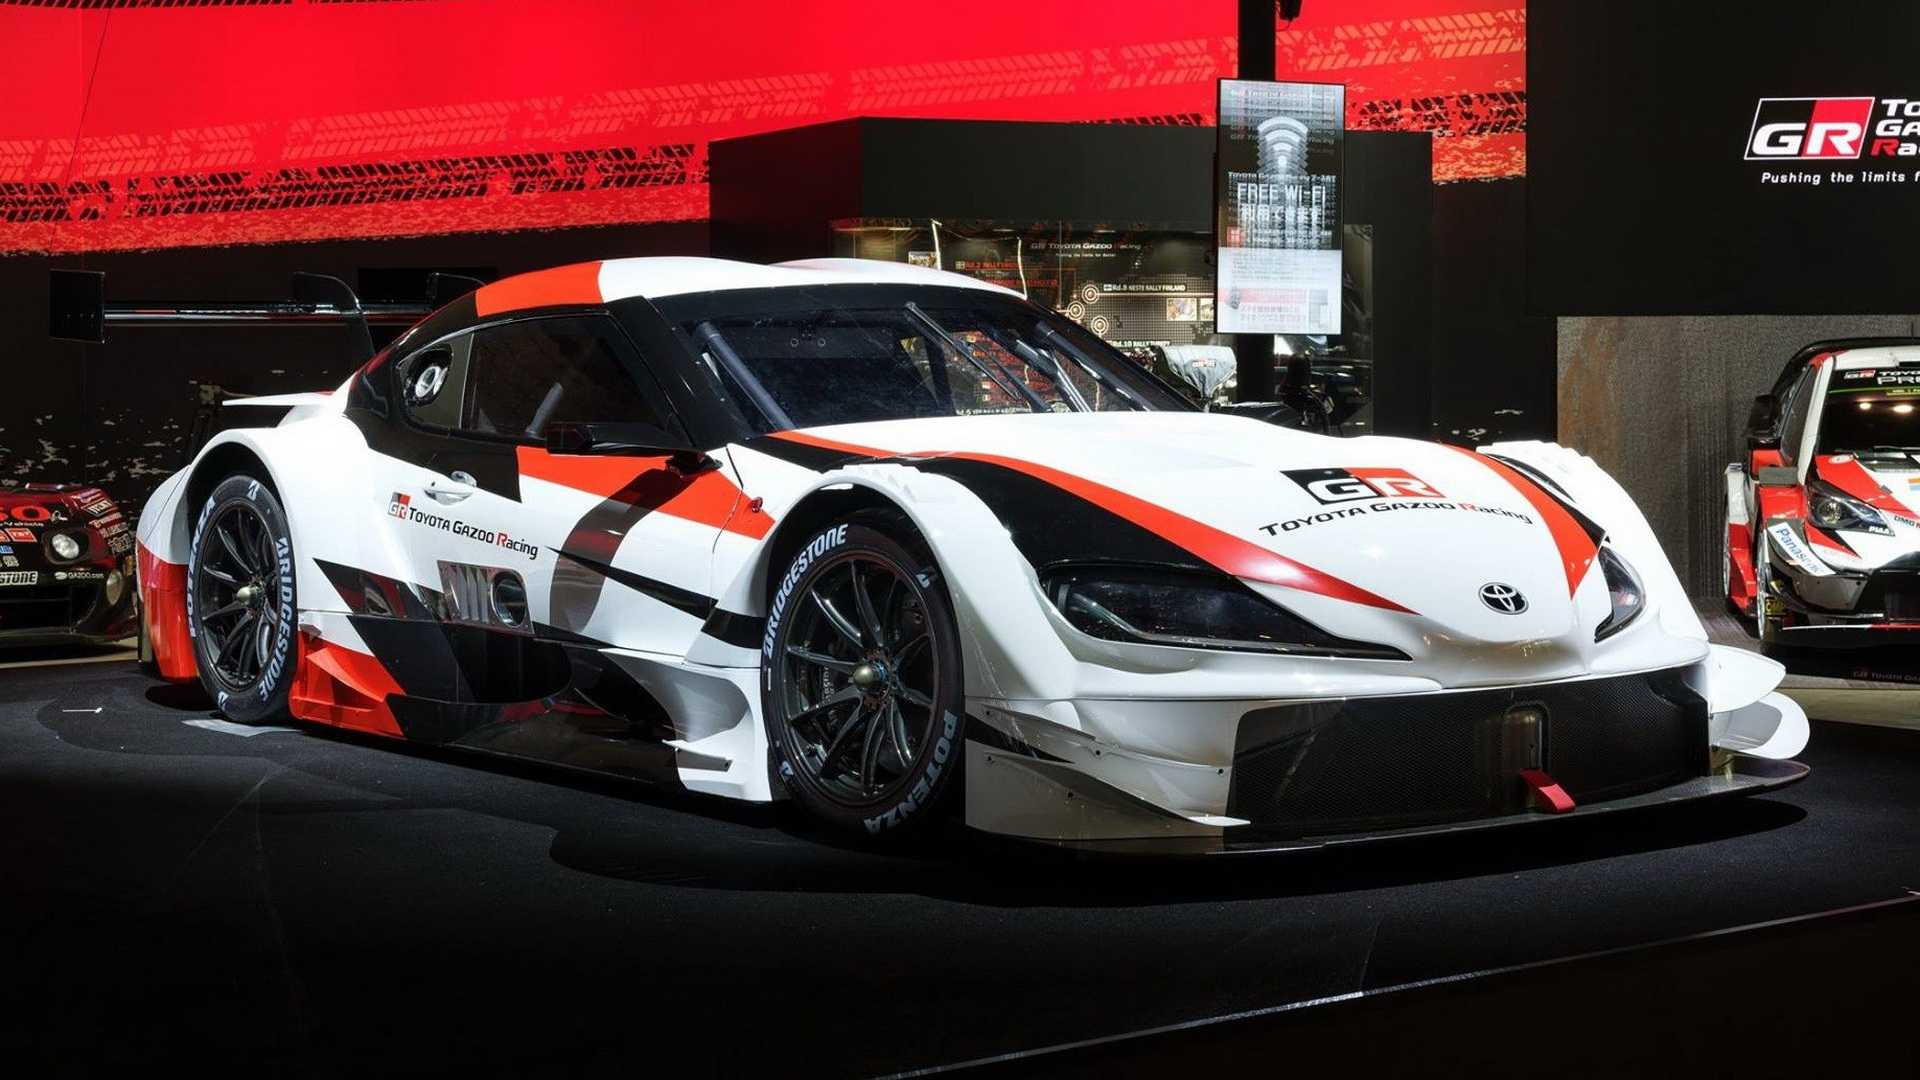 Toyota Race Cars >> Toyota Gr Supra Super Gt Signals The A90 S Racing Ambitions